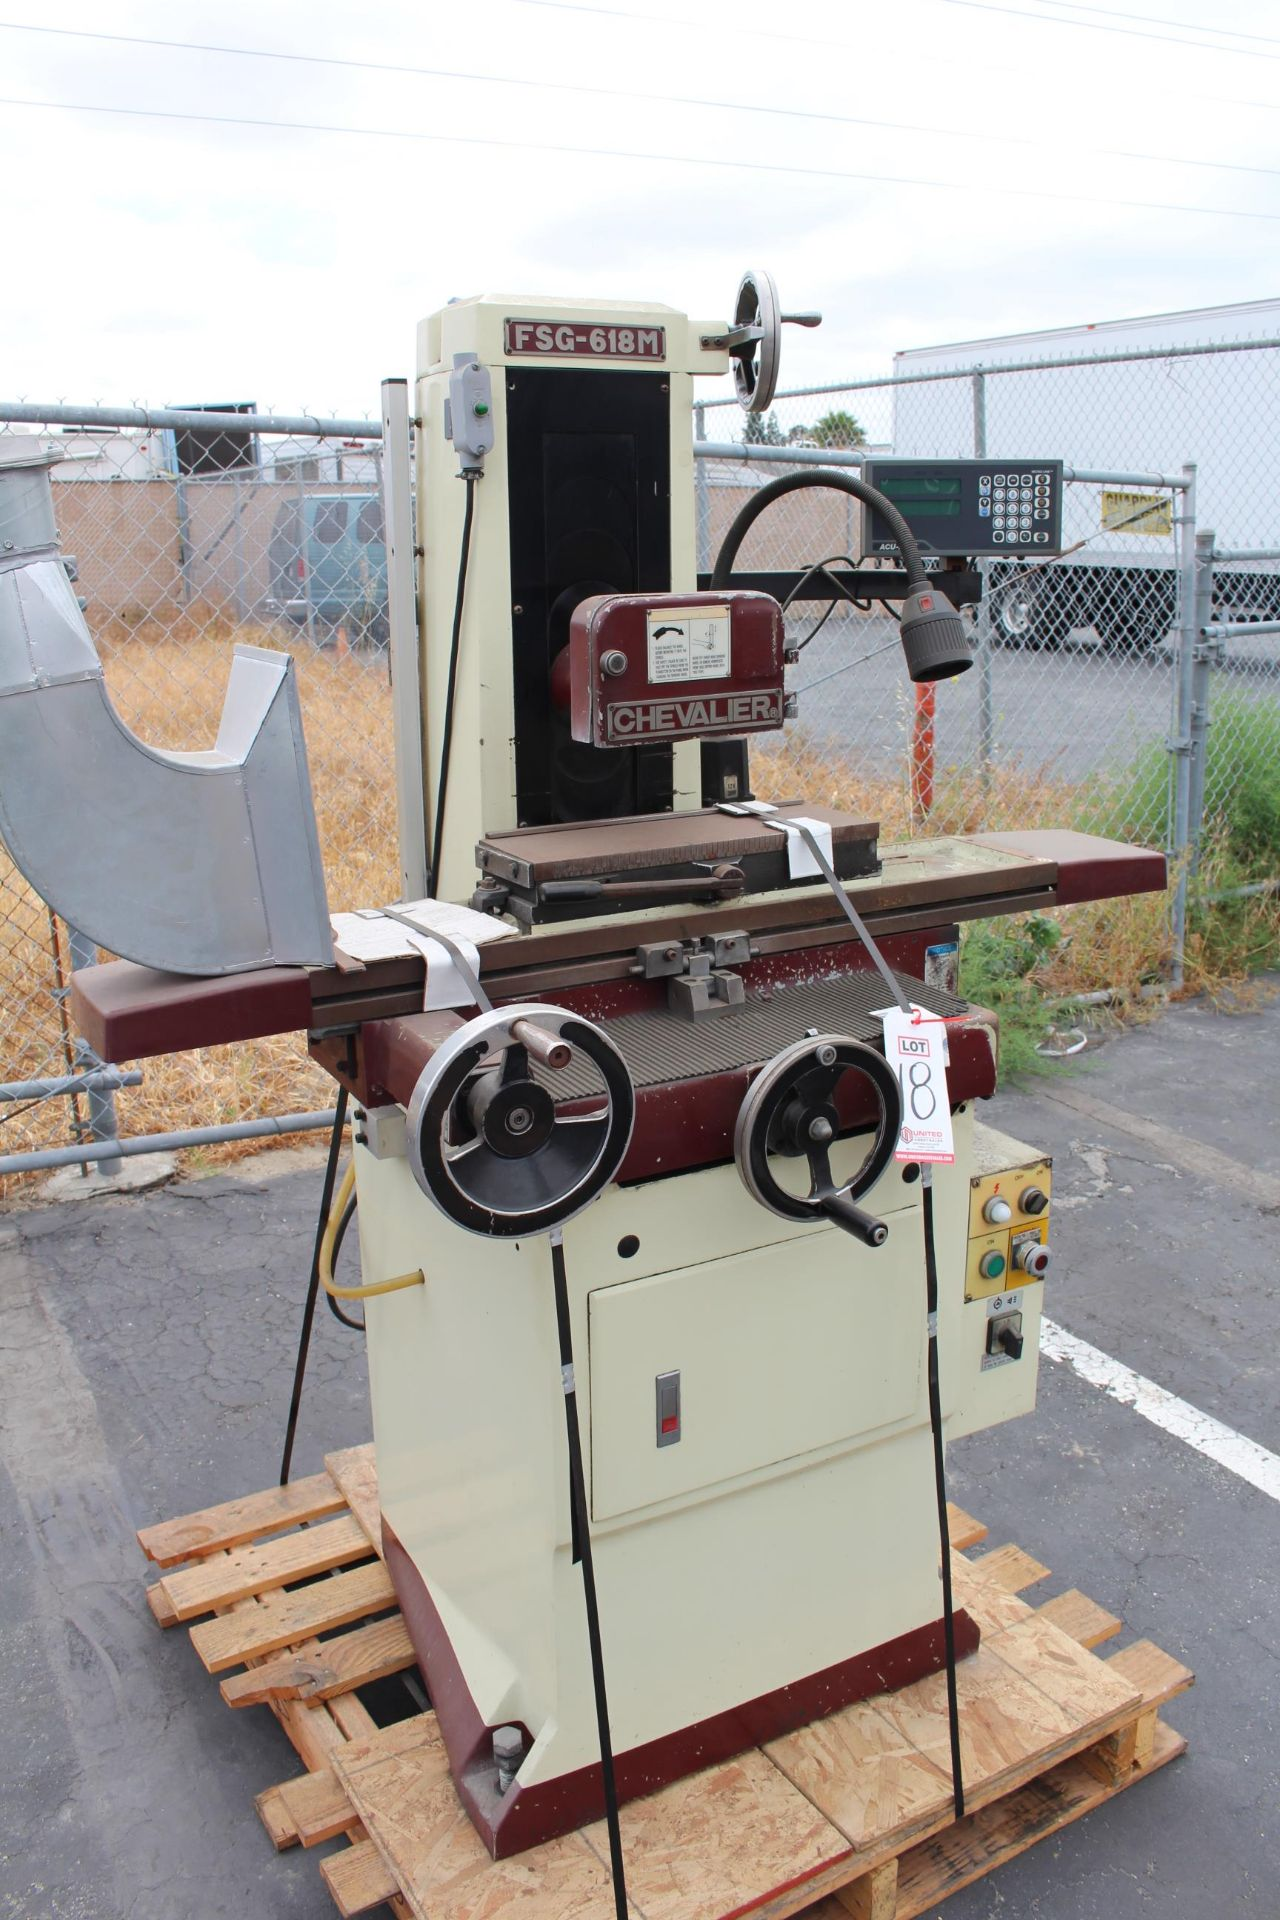 """CHEVALIER FSG-618M SURFACE GRINDER, 6"""" X 18"""" MAGNETIC CHUCK, ACU-RITE XY DRO, S/N A3837059 - Image 2 of 4"""